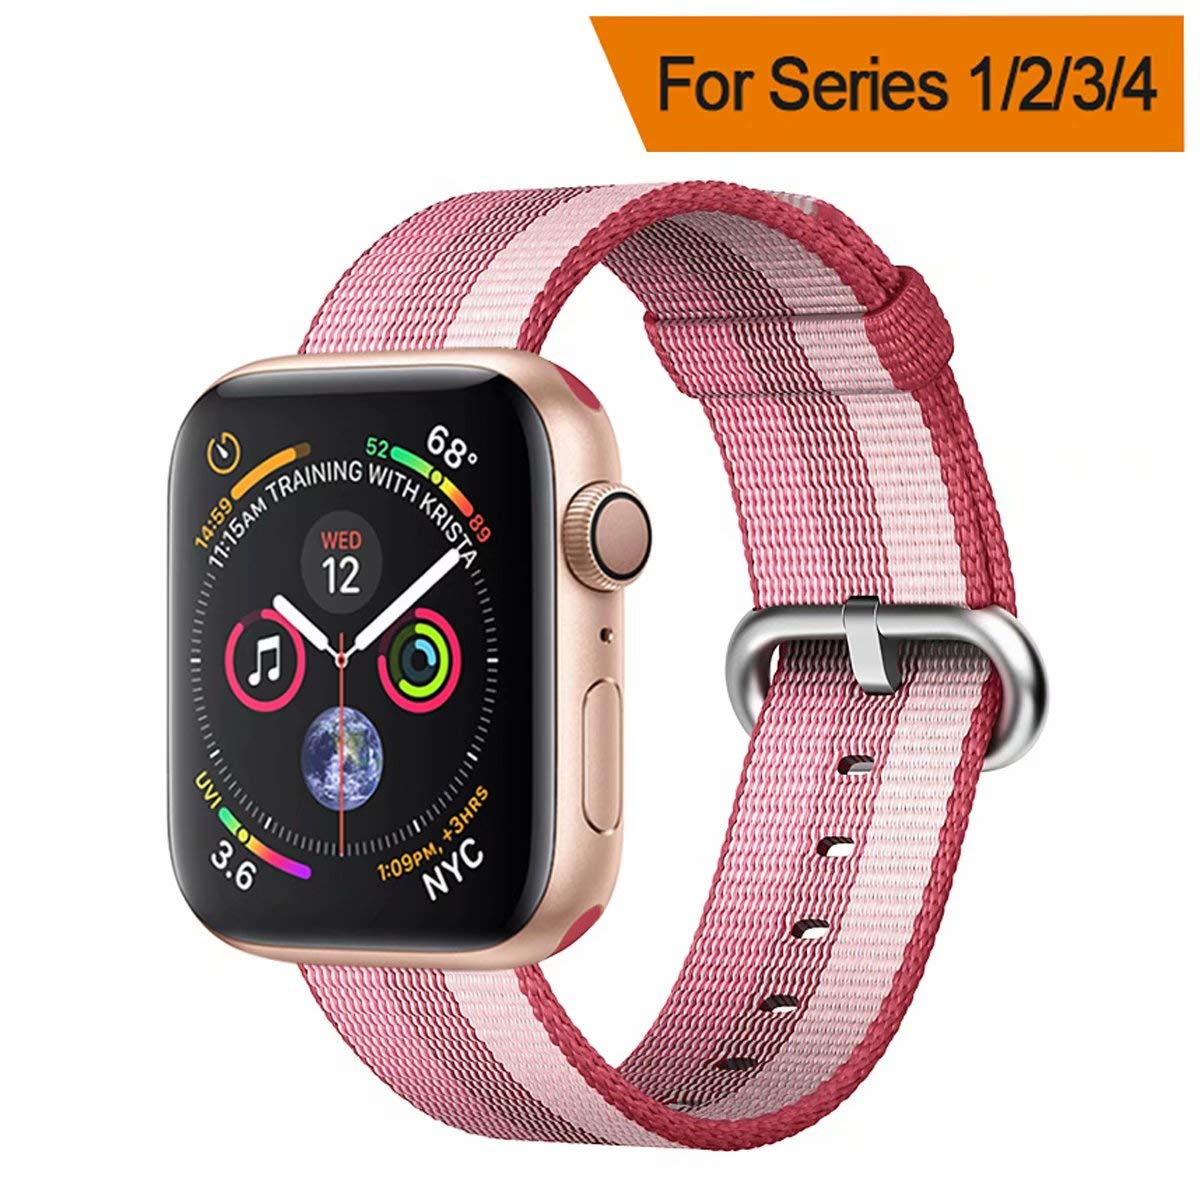 HILIMNY Compatible for Apple Watch Band 38mm 40mm 42mm 44mm Newest Woven Nylon Fabric Wrist Strap Replacement Band Compatible for Apple iWatch Series 4 3 2 1